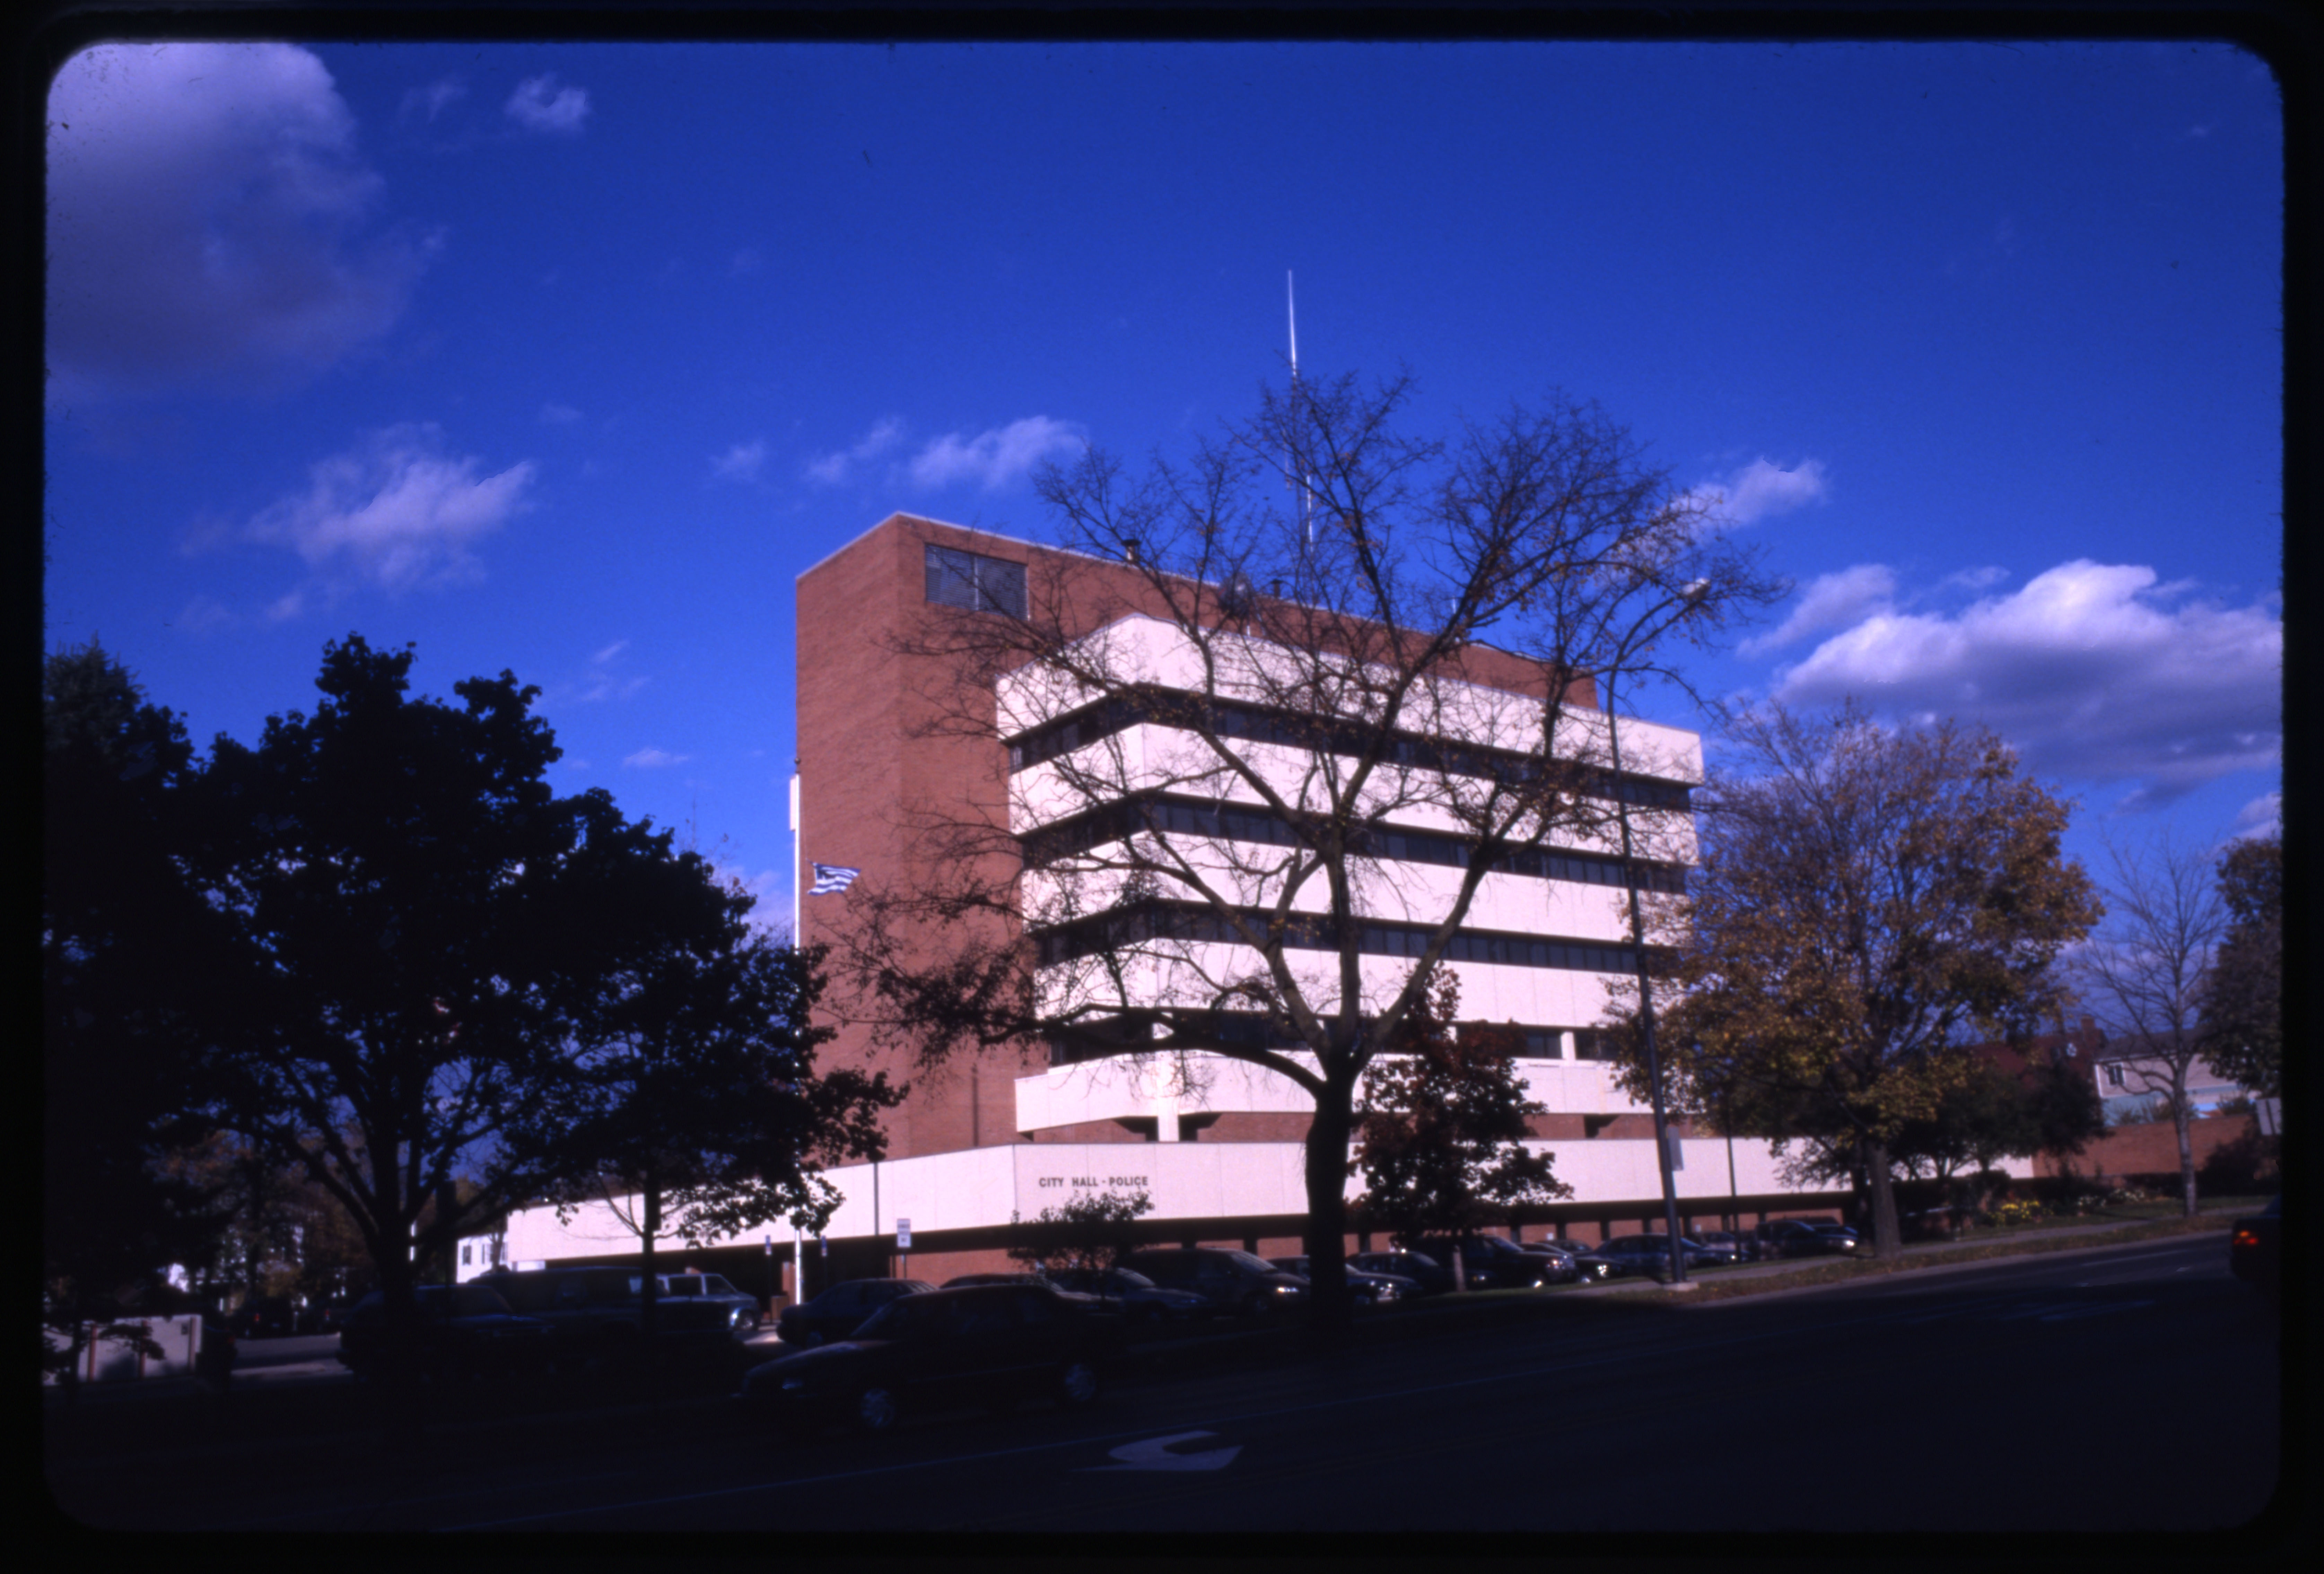 Ann Arbor City Hall, 1999 image